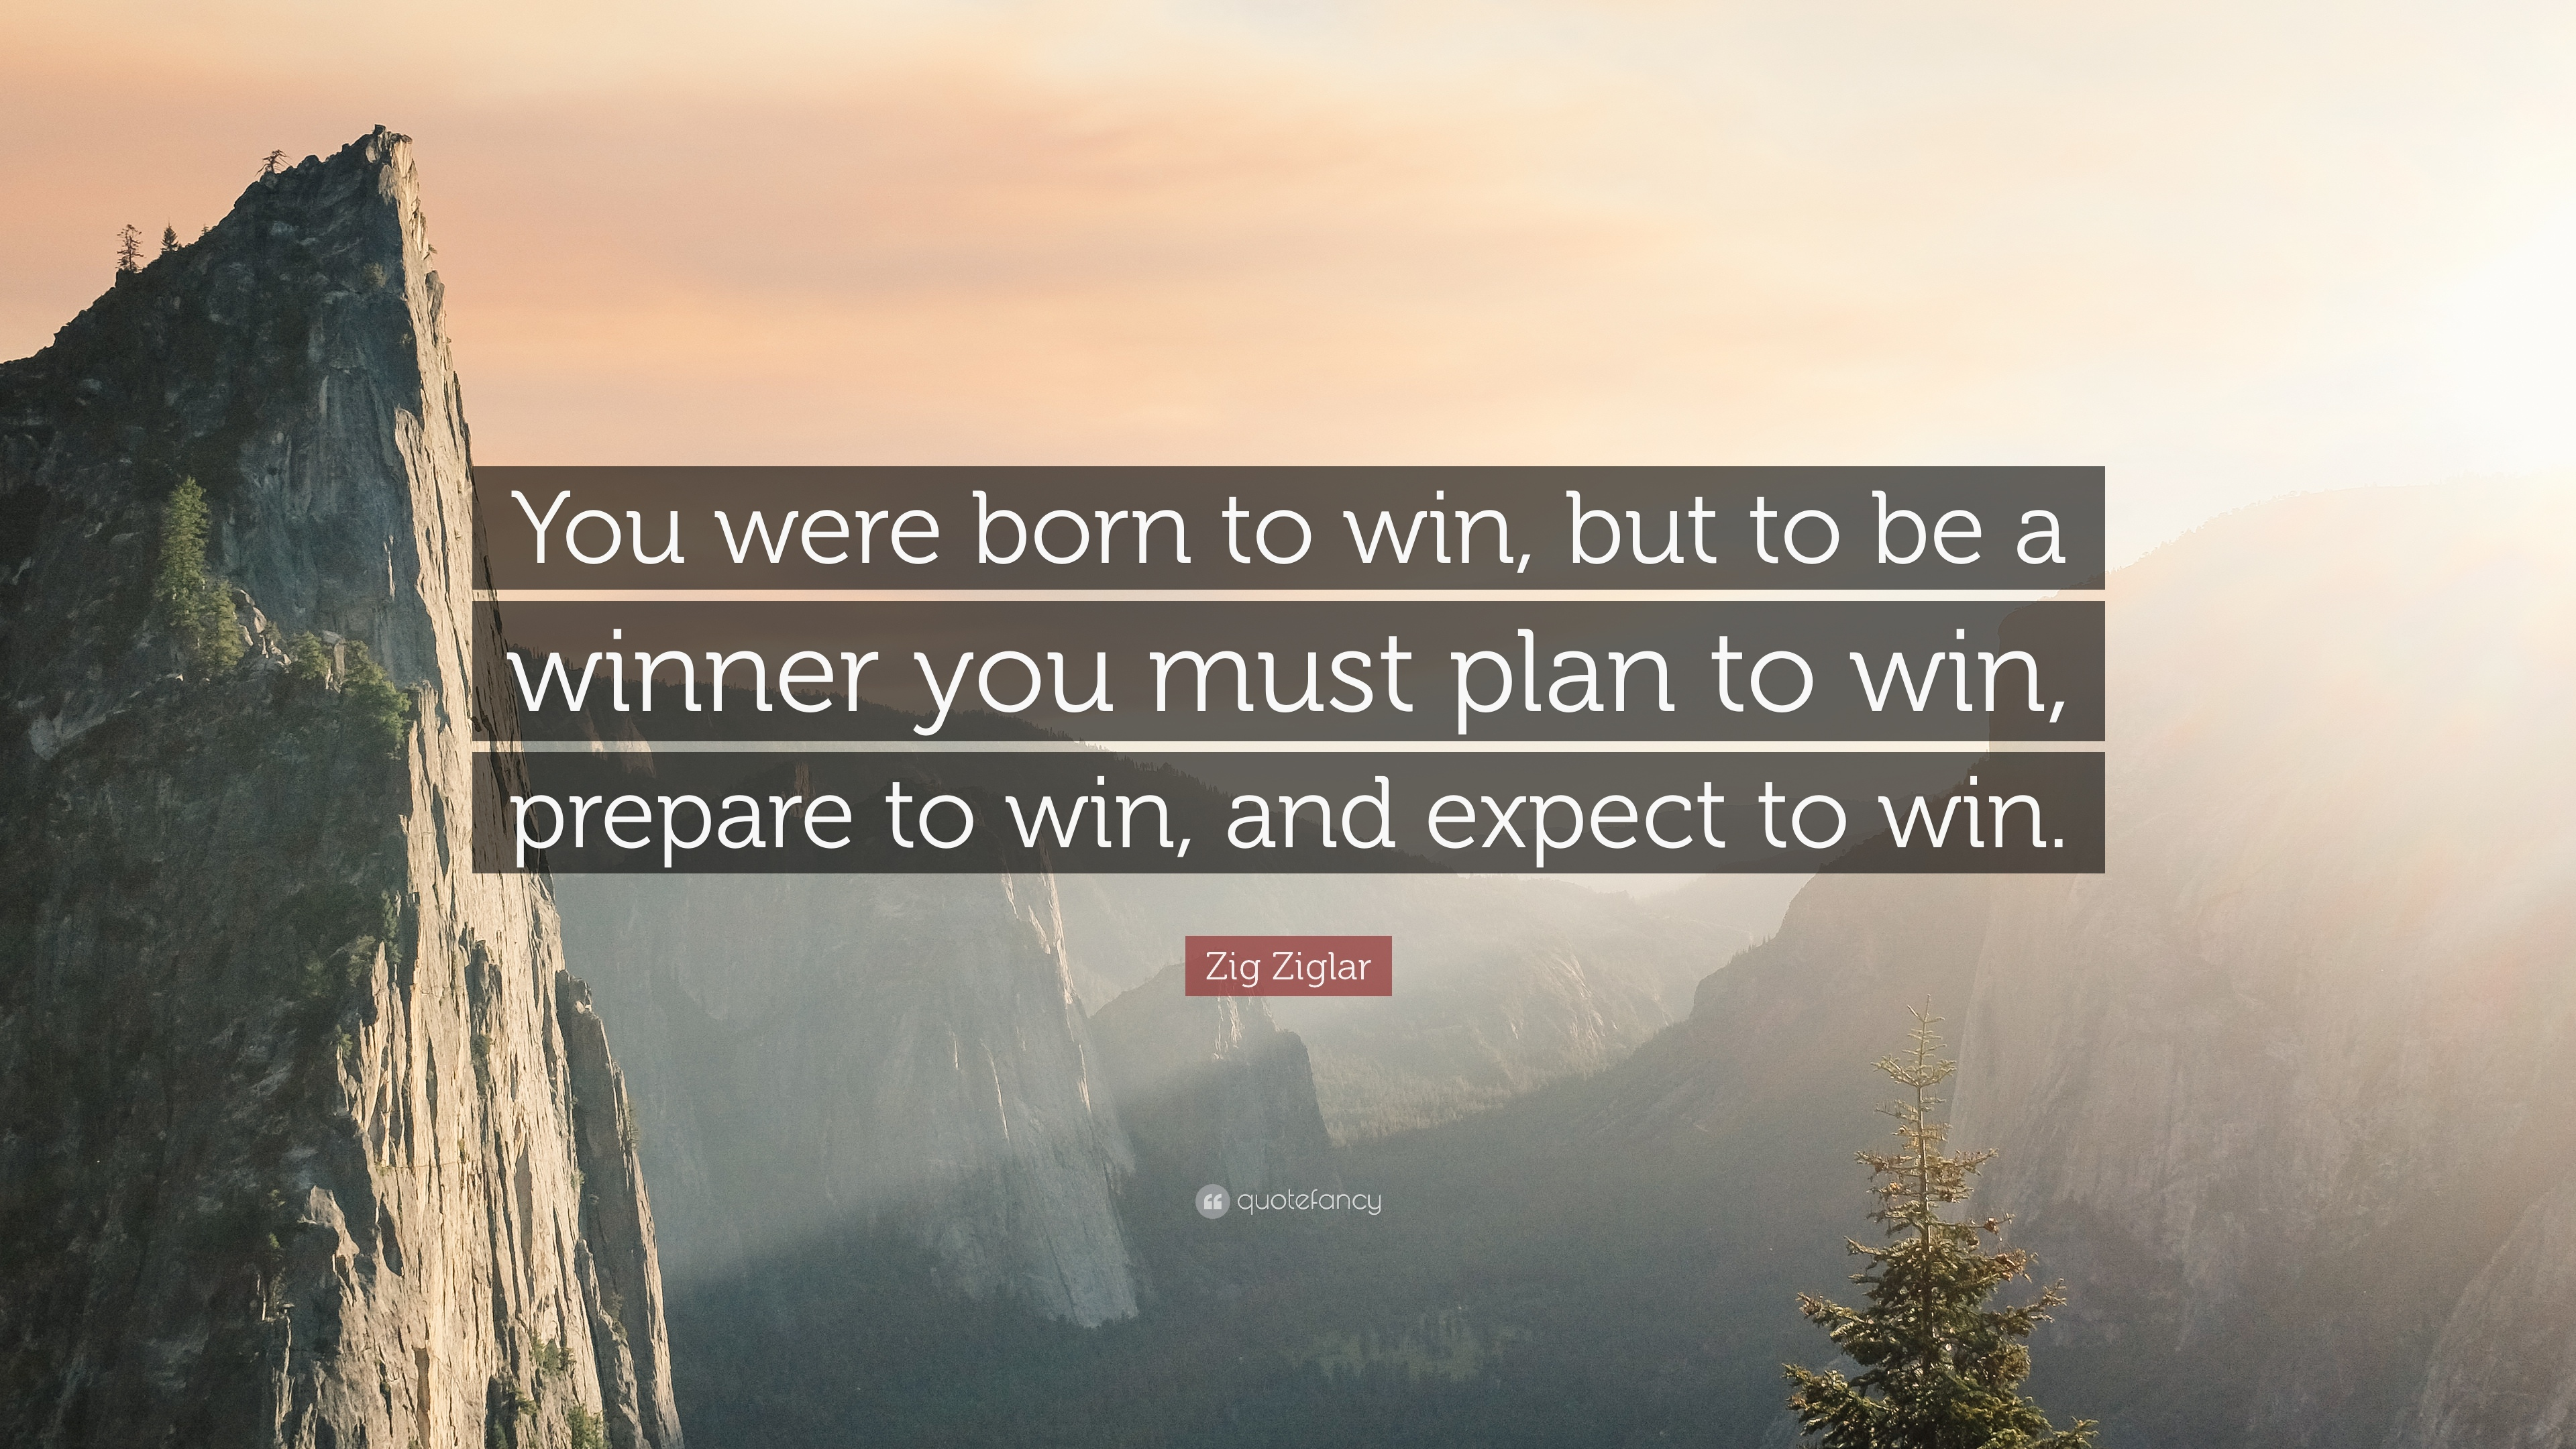 ZIGLAR BORN TO WIN EPUB DOWNLOAD